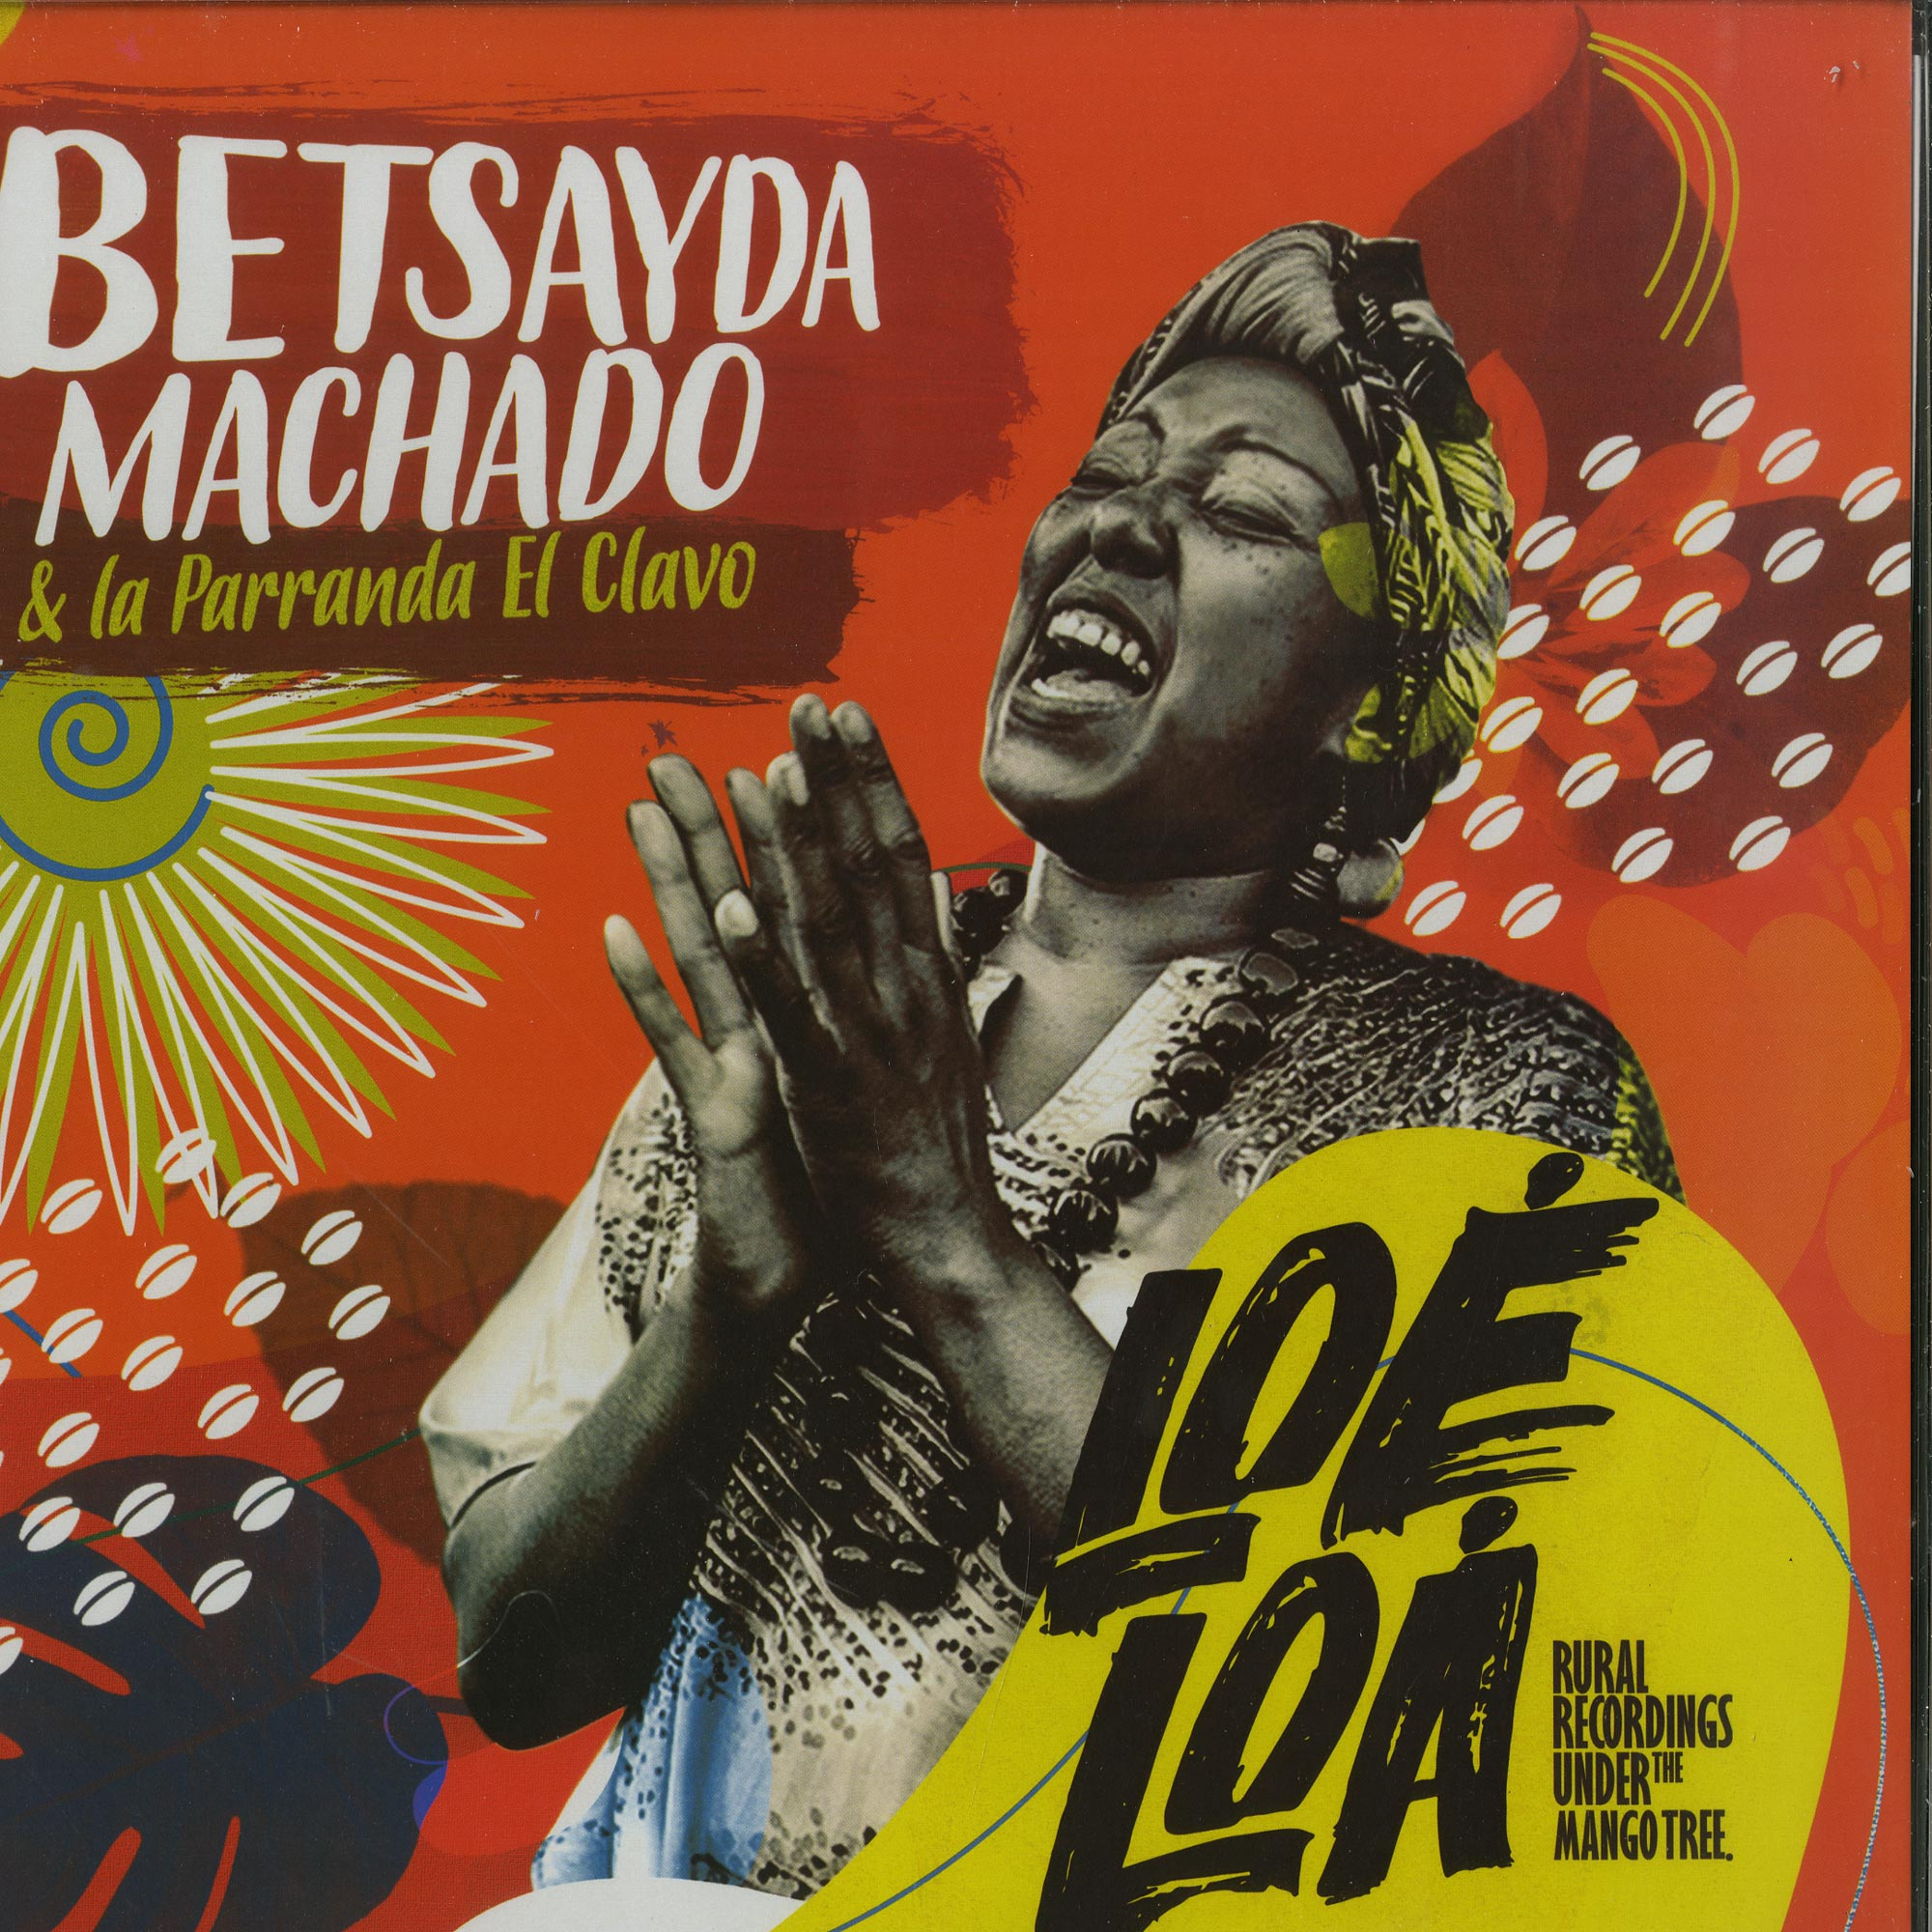 Betsayda Machado & La Parranda El Clavo - LOE LOA - RURAL RECORDINGS UNDER THE MANGO TREE